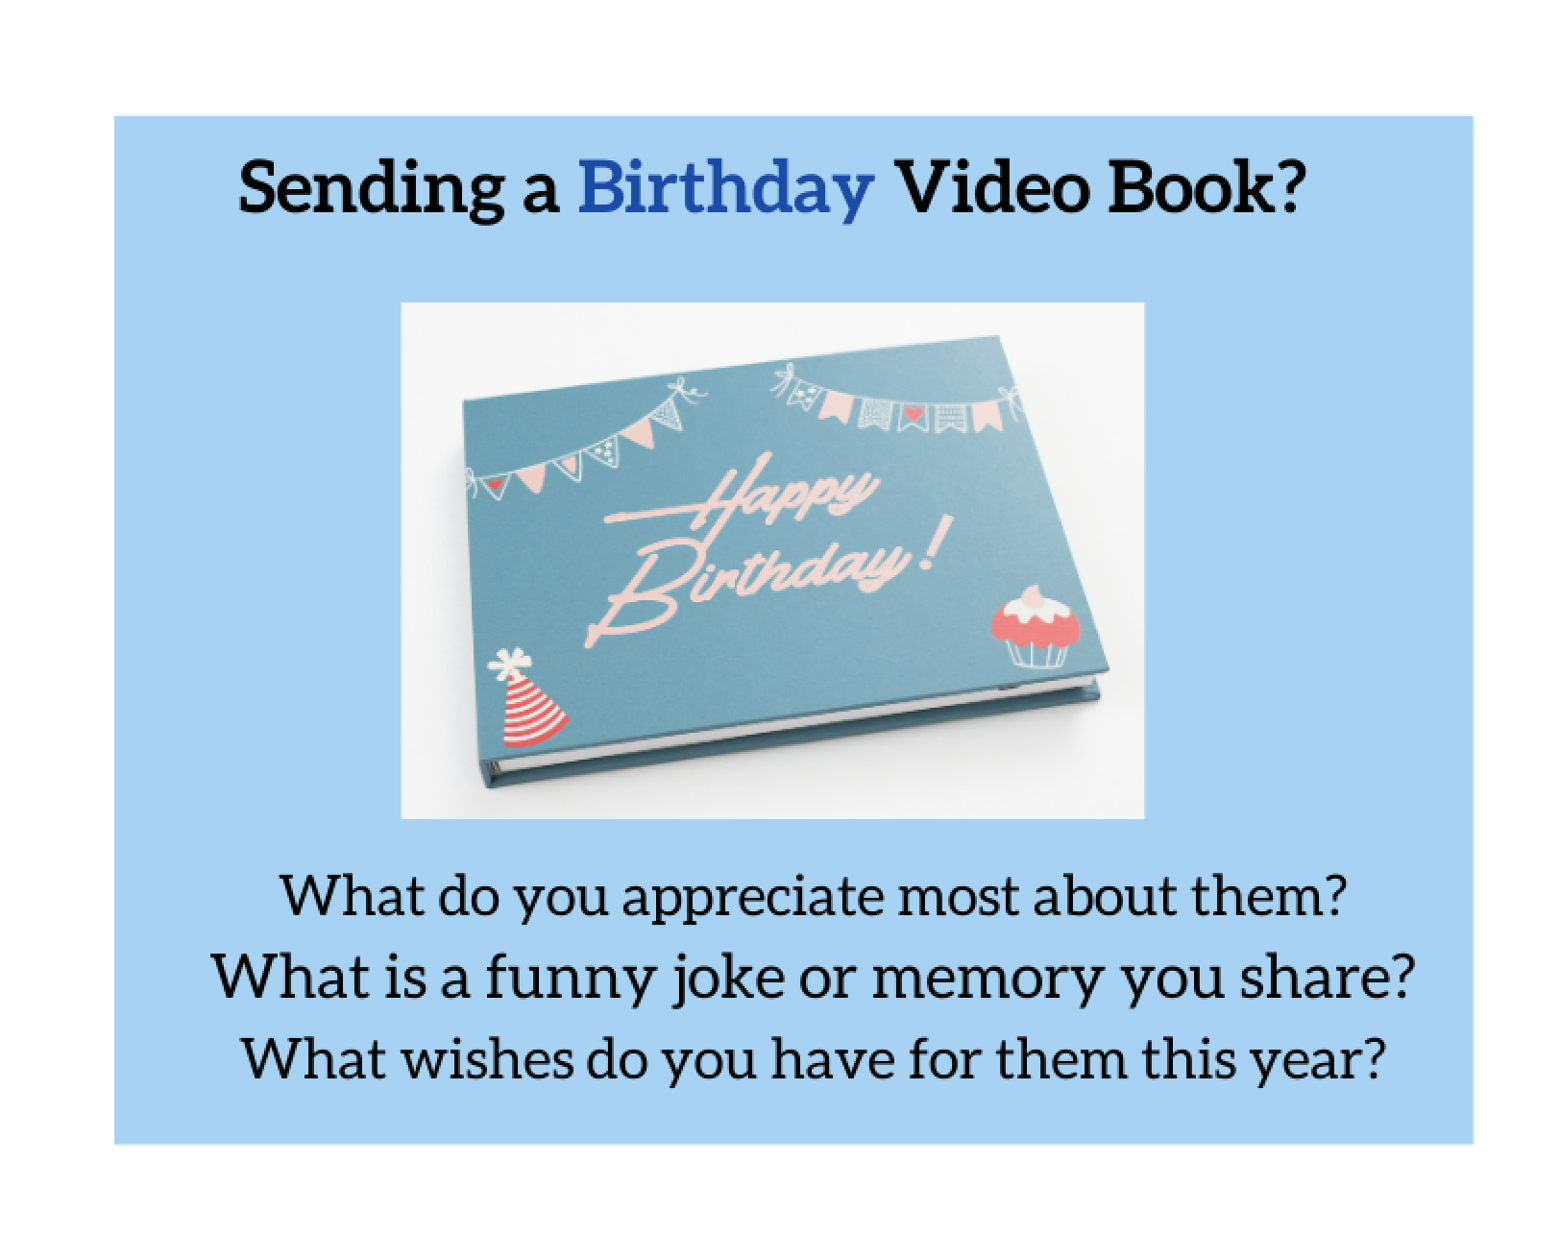 Video book with happy birthday on the cover